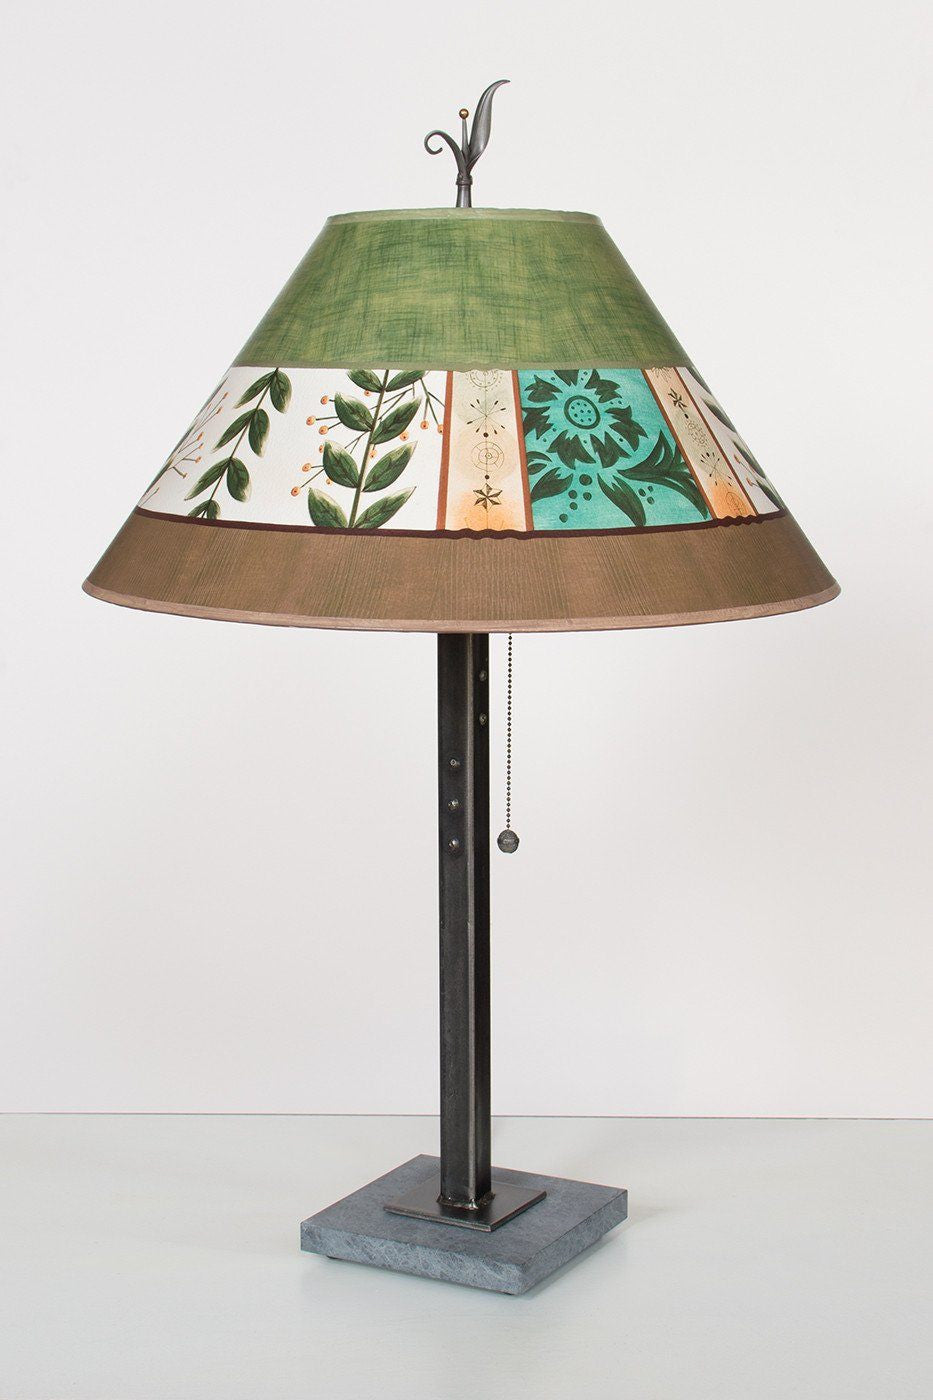 Steel Table Lamp on Italian Marble with Large Conical Shade in Spring Medley Apple